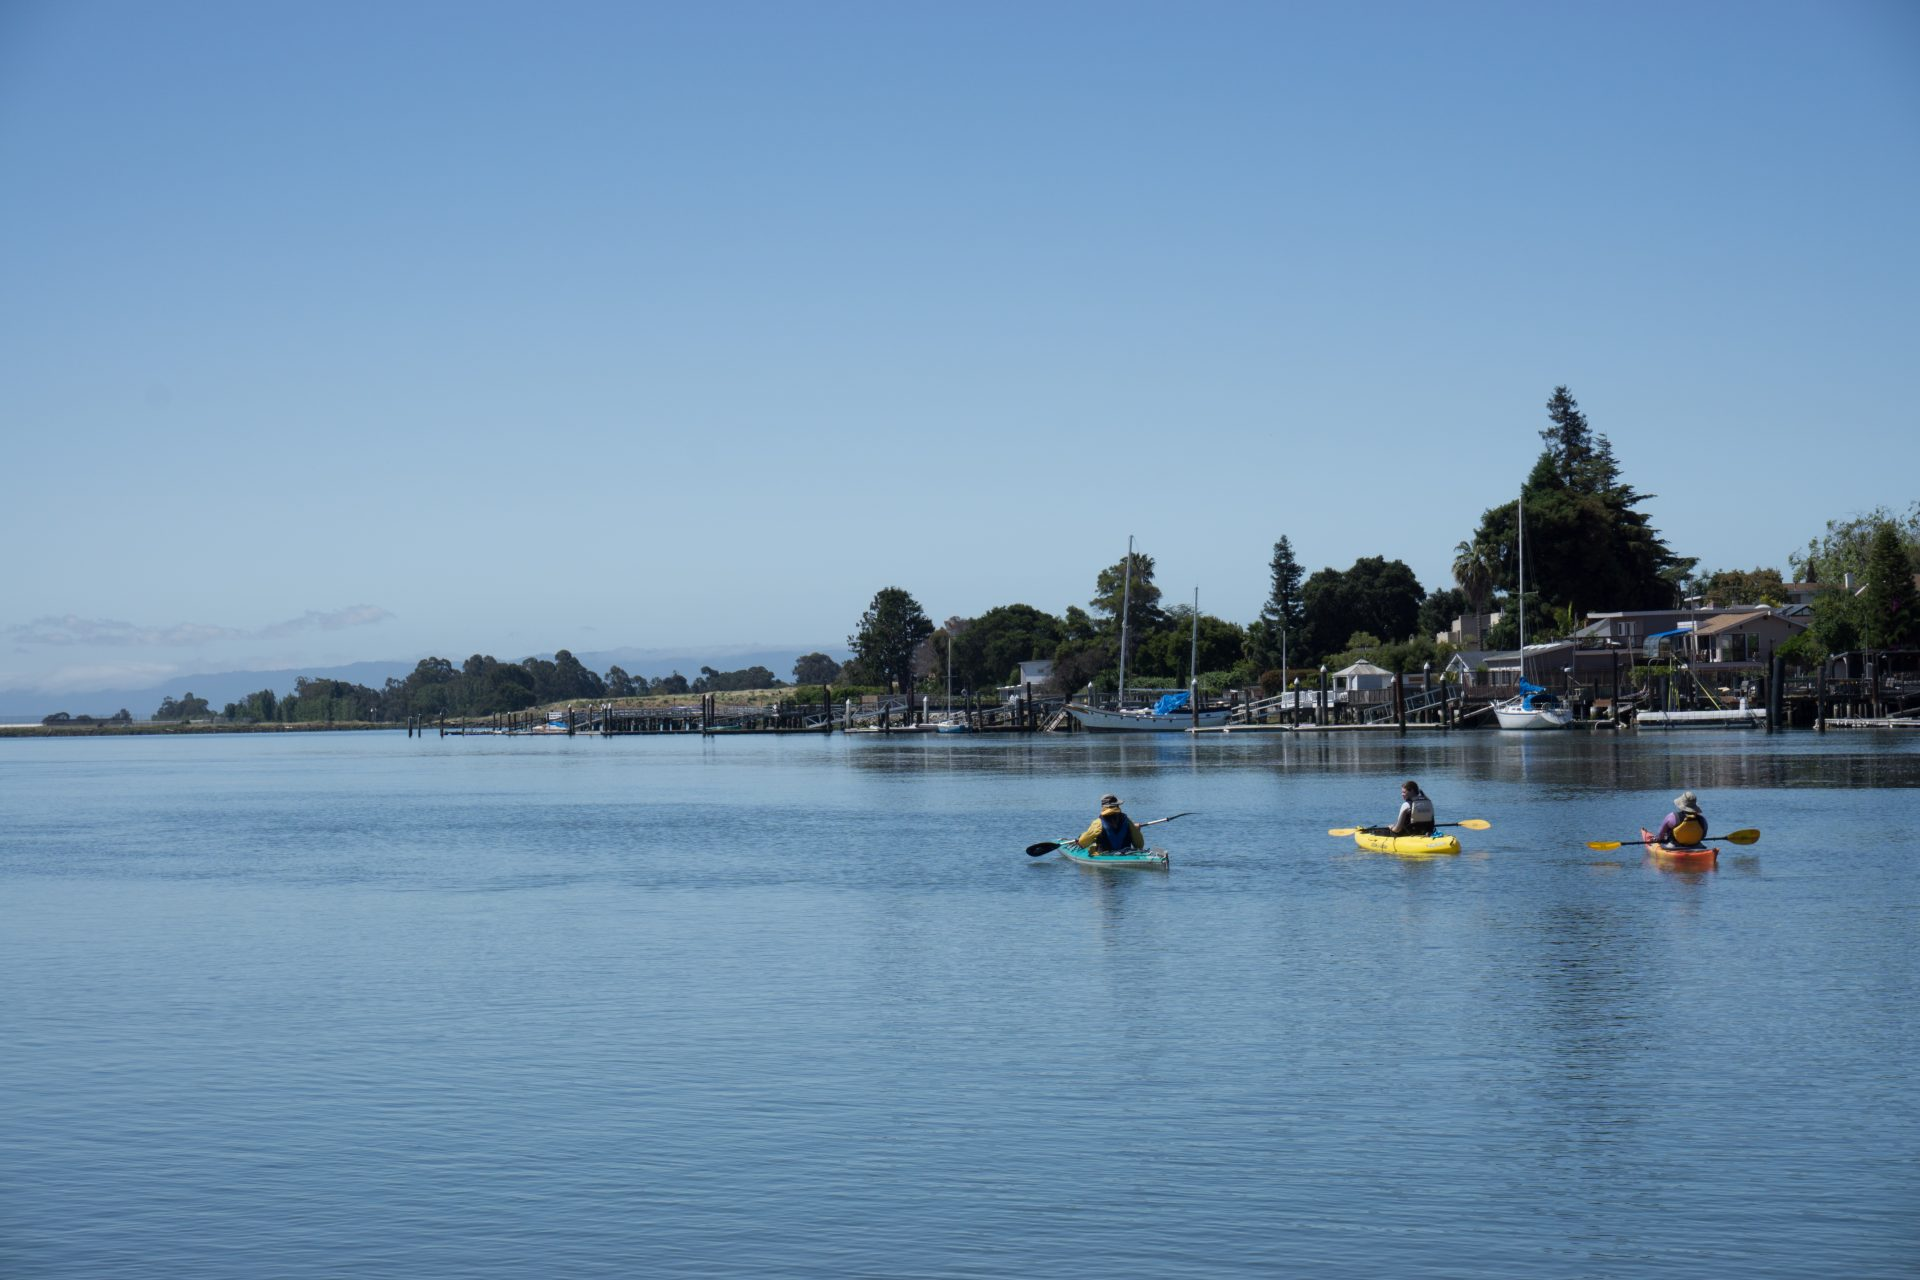 three kayakers in distance on calm waters